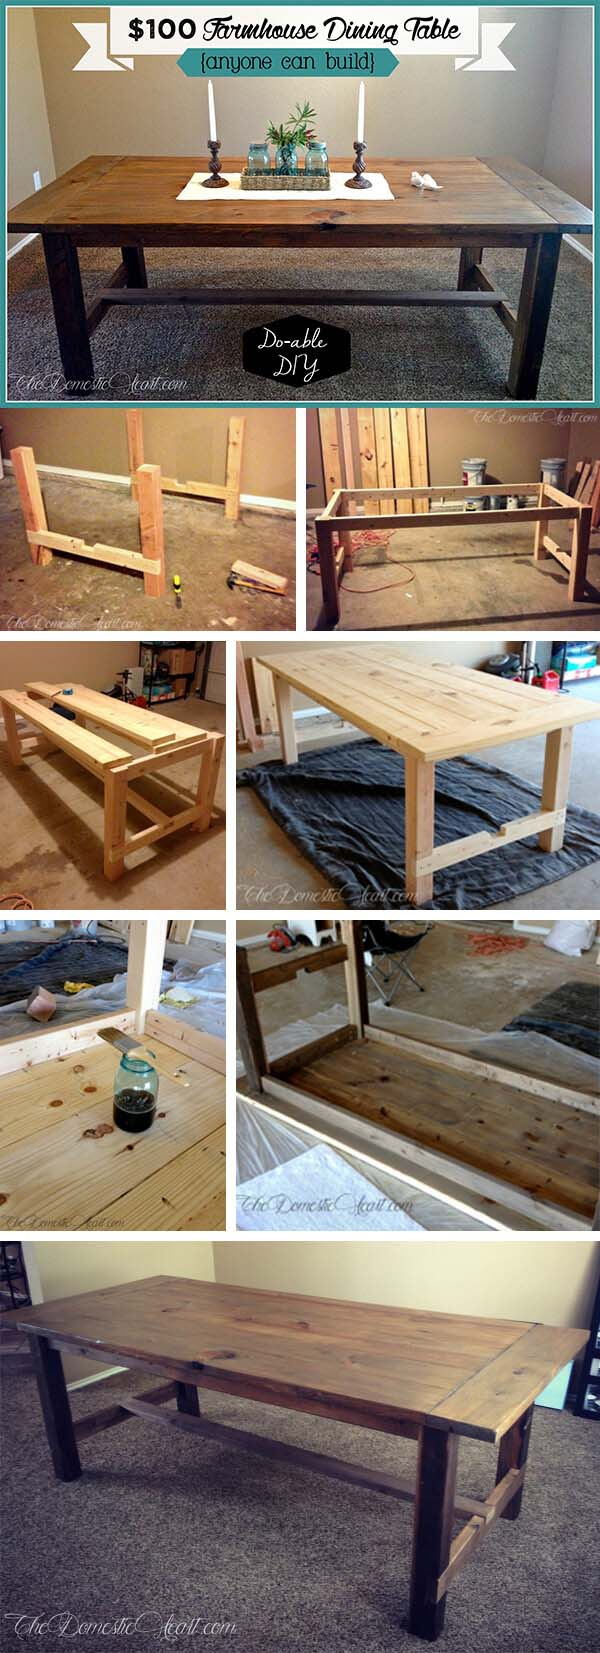 Country Dining Furniture on a Budget #diy #farmhouse #table #decorhomeideas